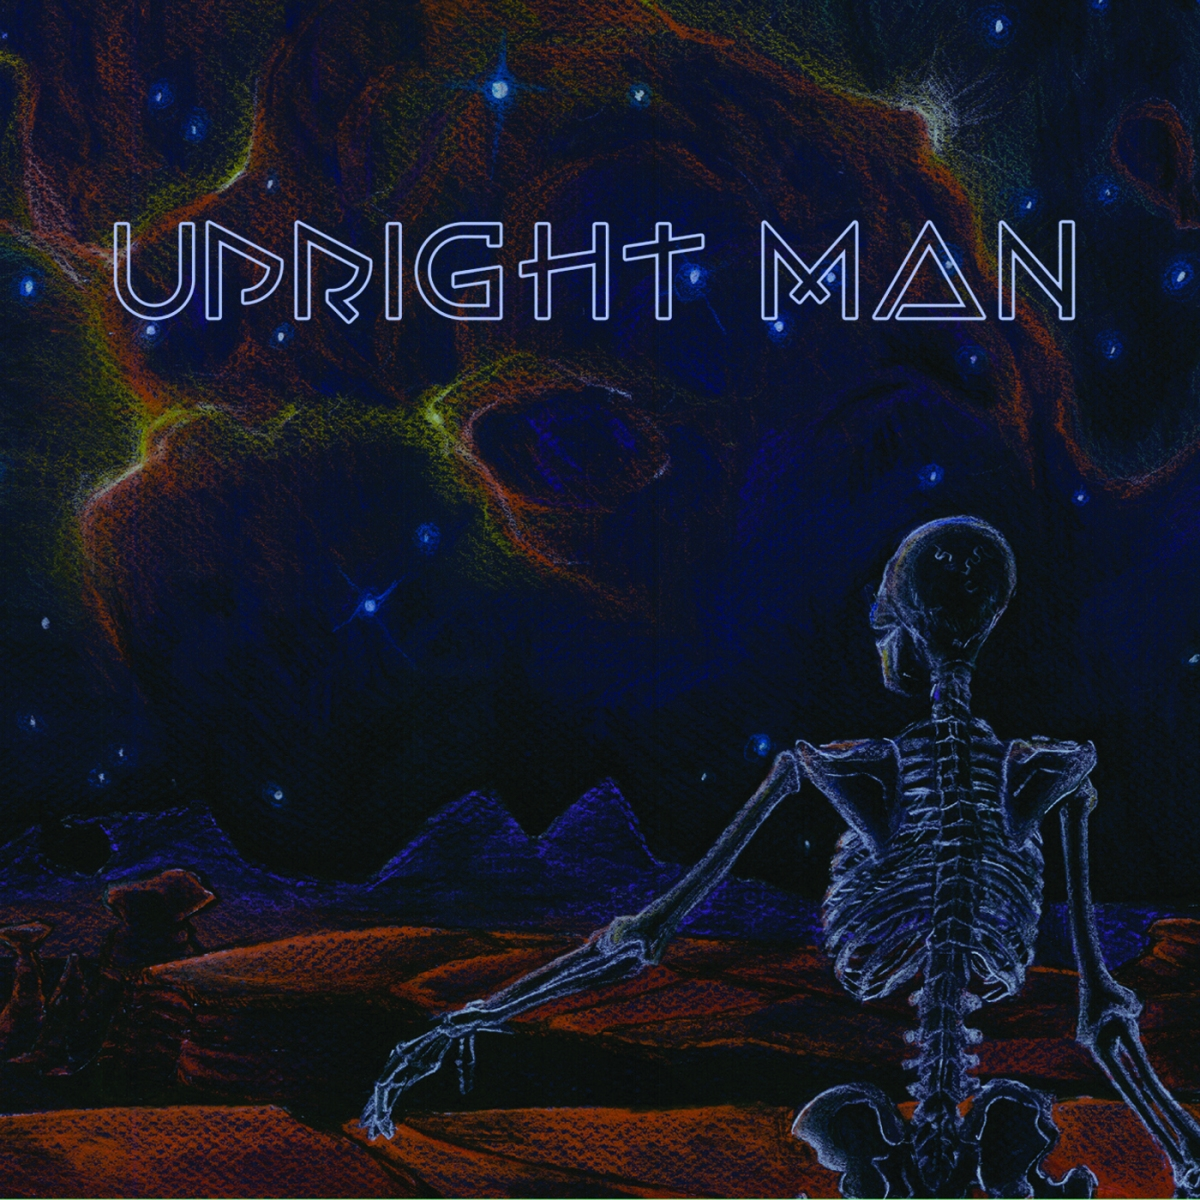 Upright Man Debuts Album This August